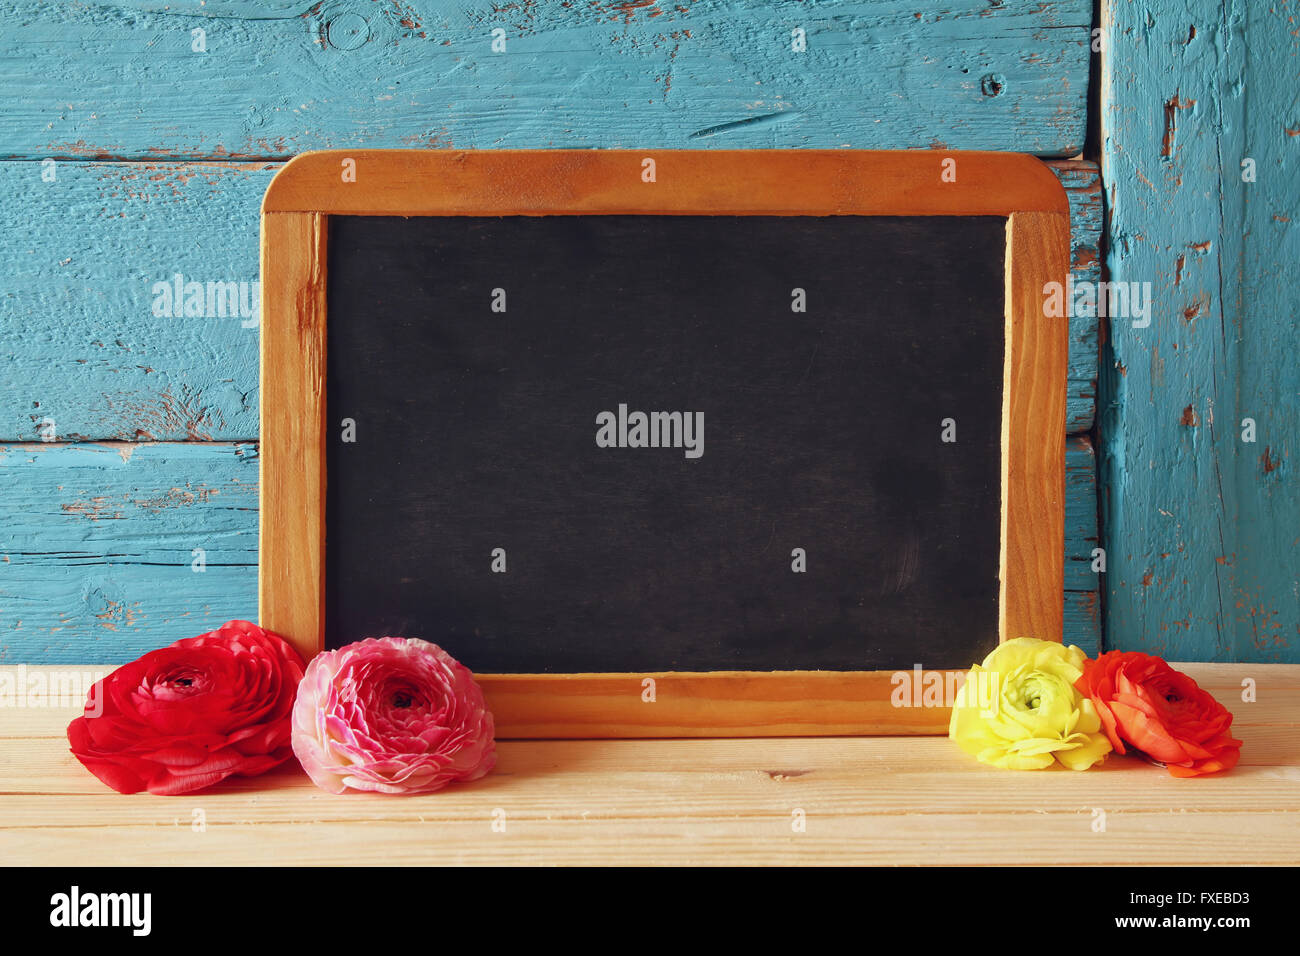 flowers next to empty blackboard, on wooden table. copy space. - Stock Image